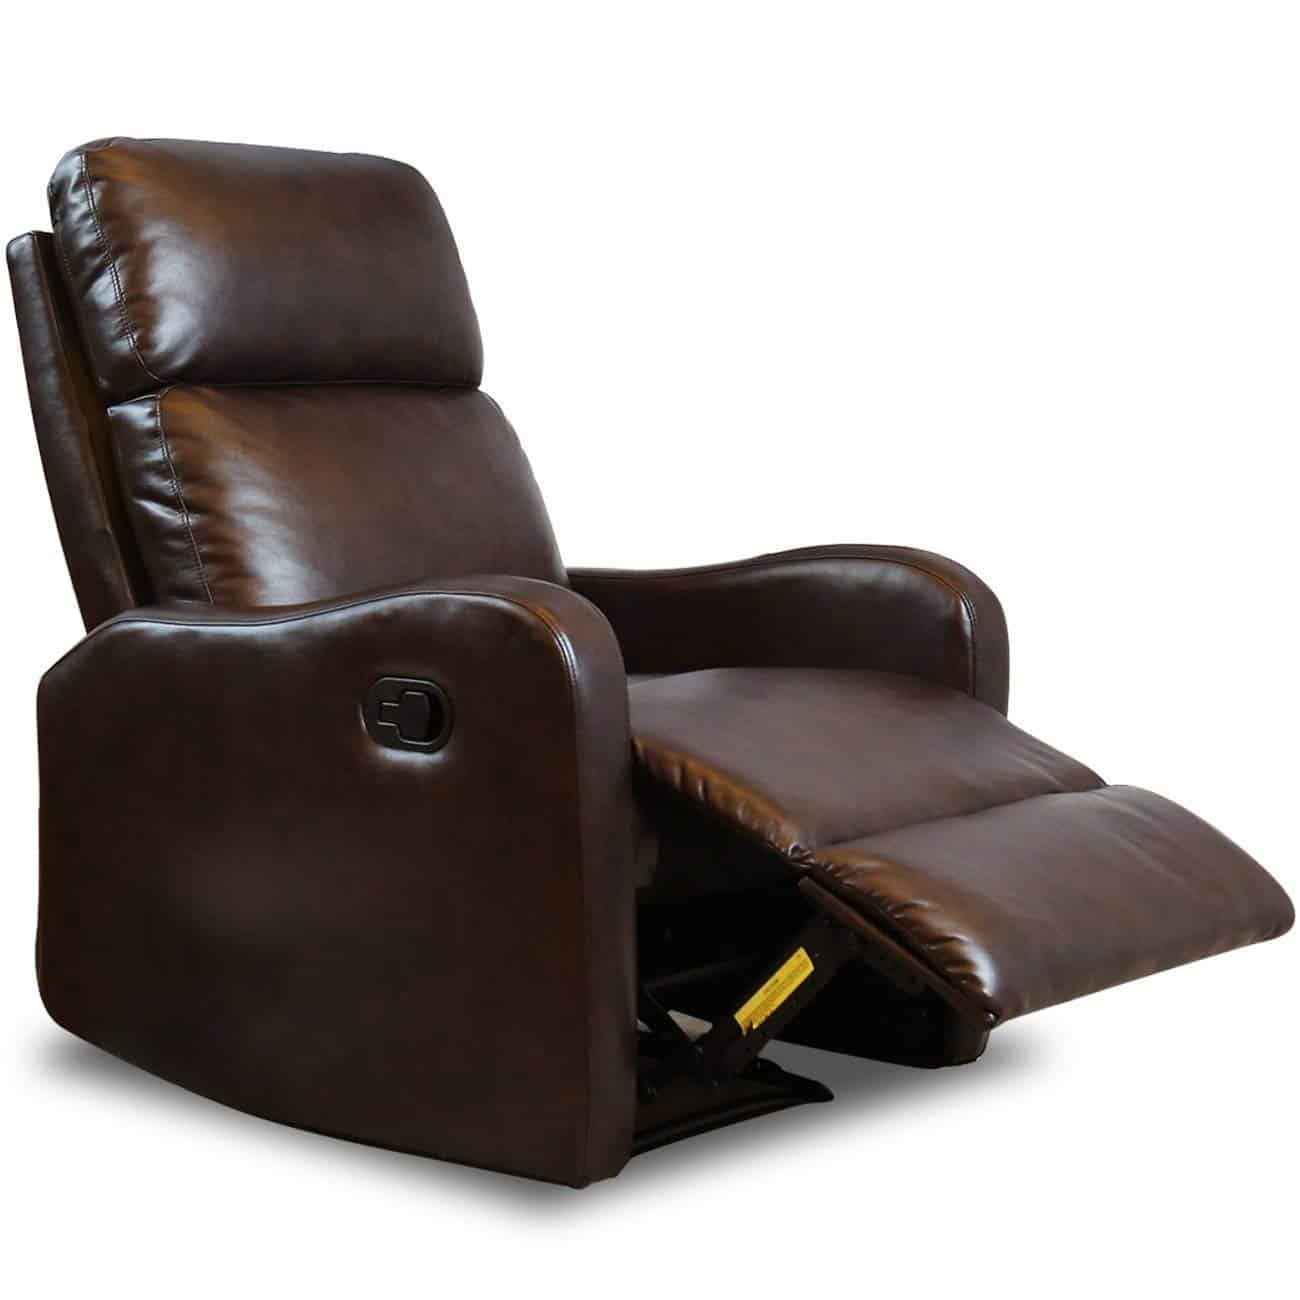 Top 10 Real Leather Recliner Chairs 2019 Reviews Amp Guide